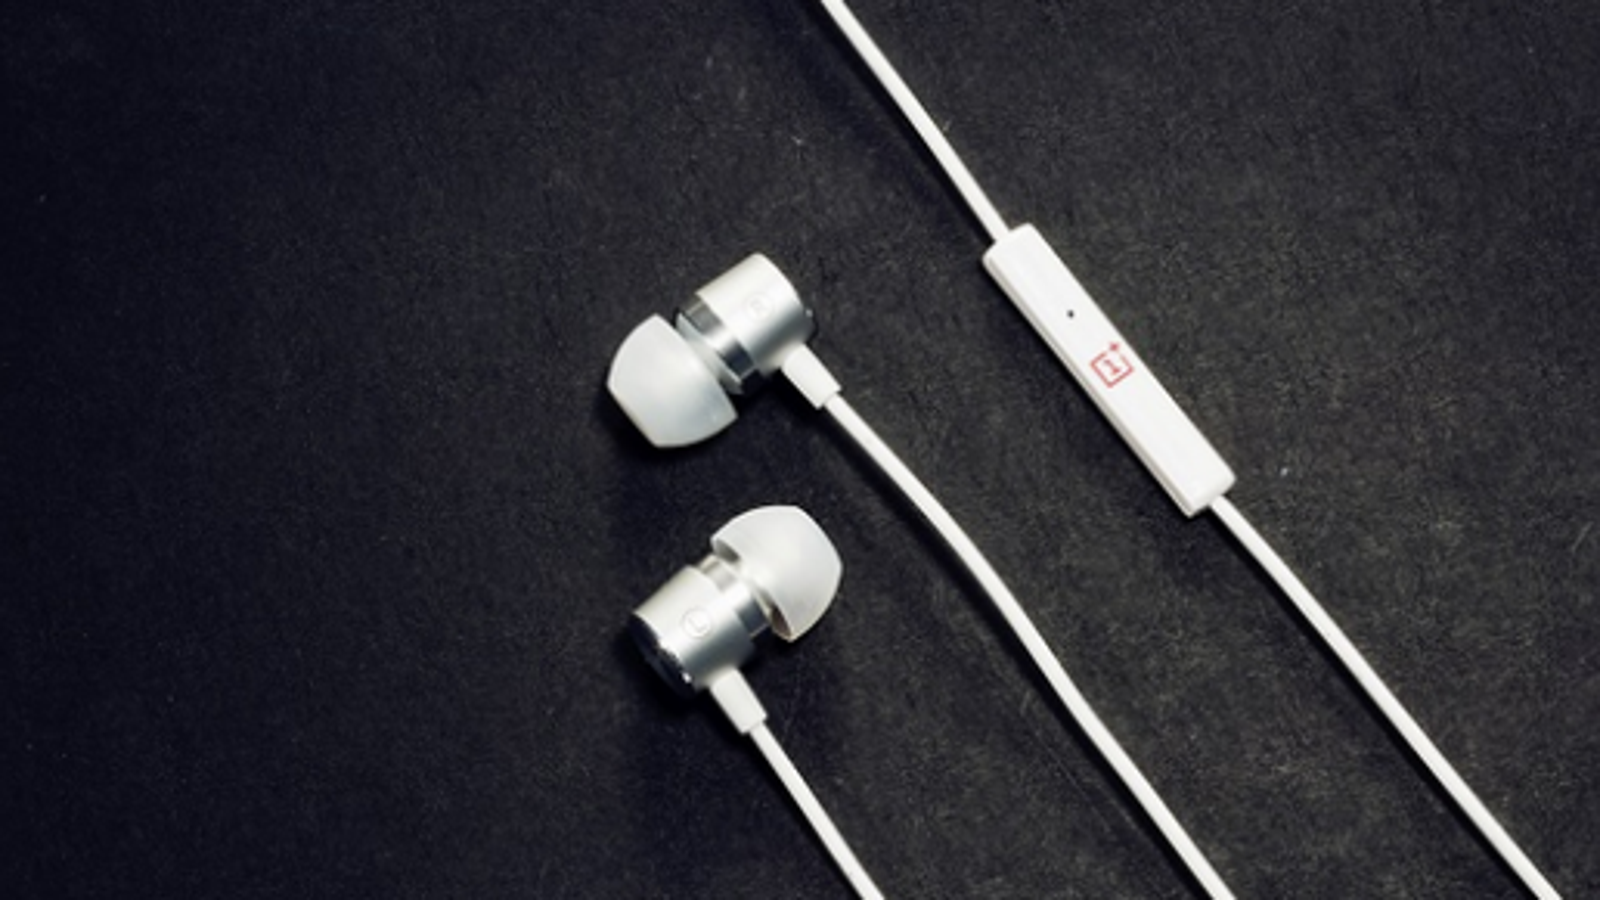 surround sound gaming earbuds - OnePlus Has $15 Earbuds To Match Its Fantastic Phone